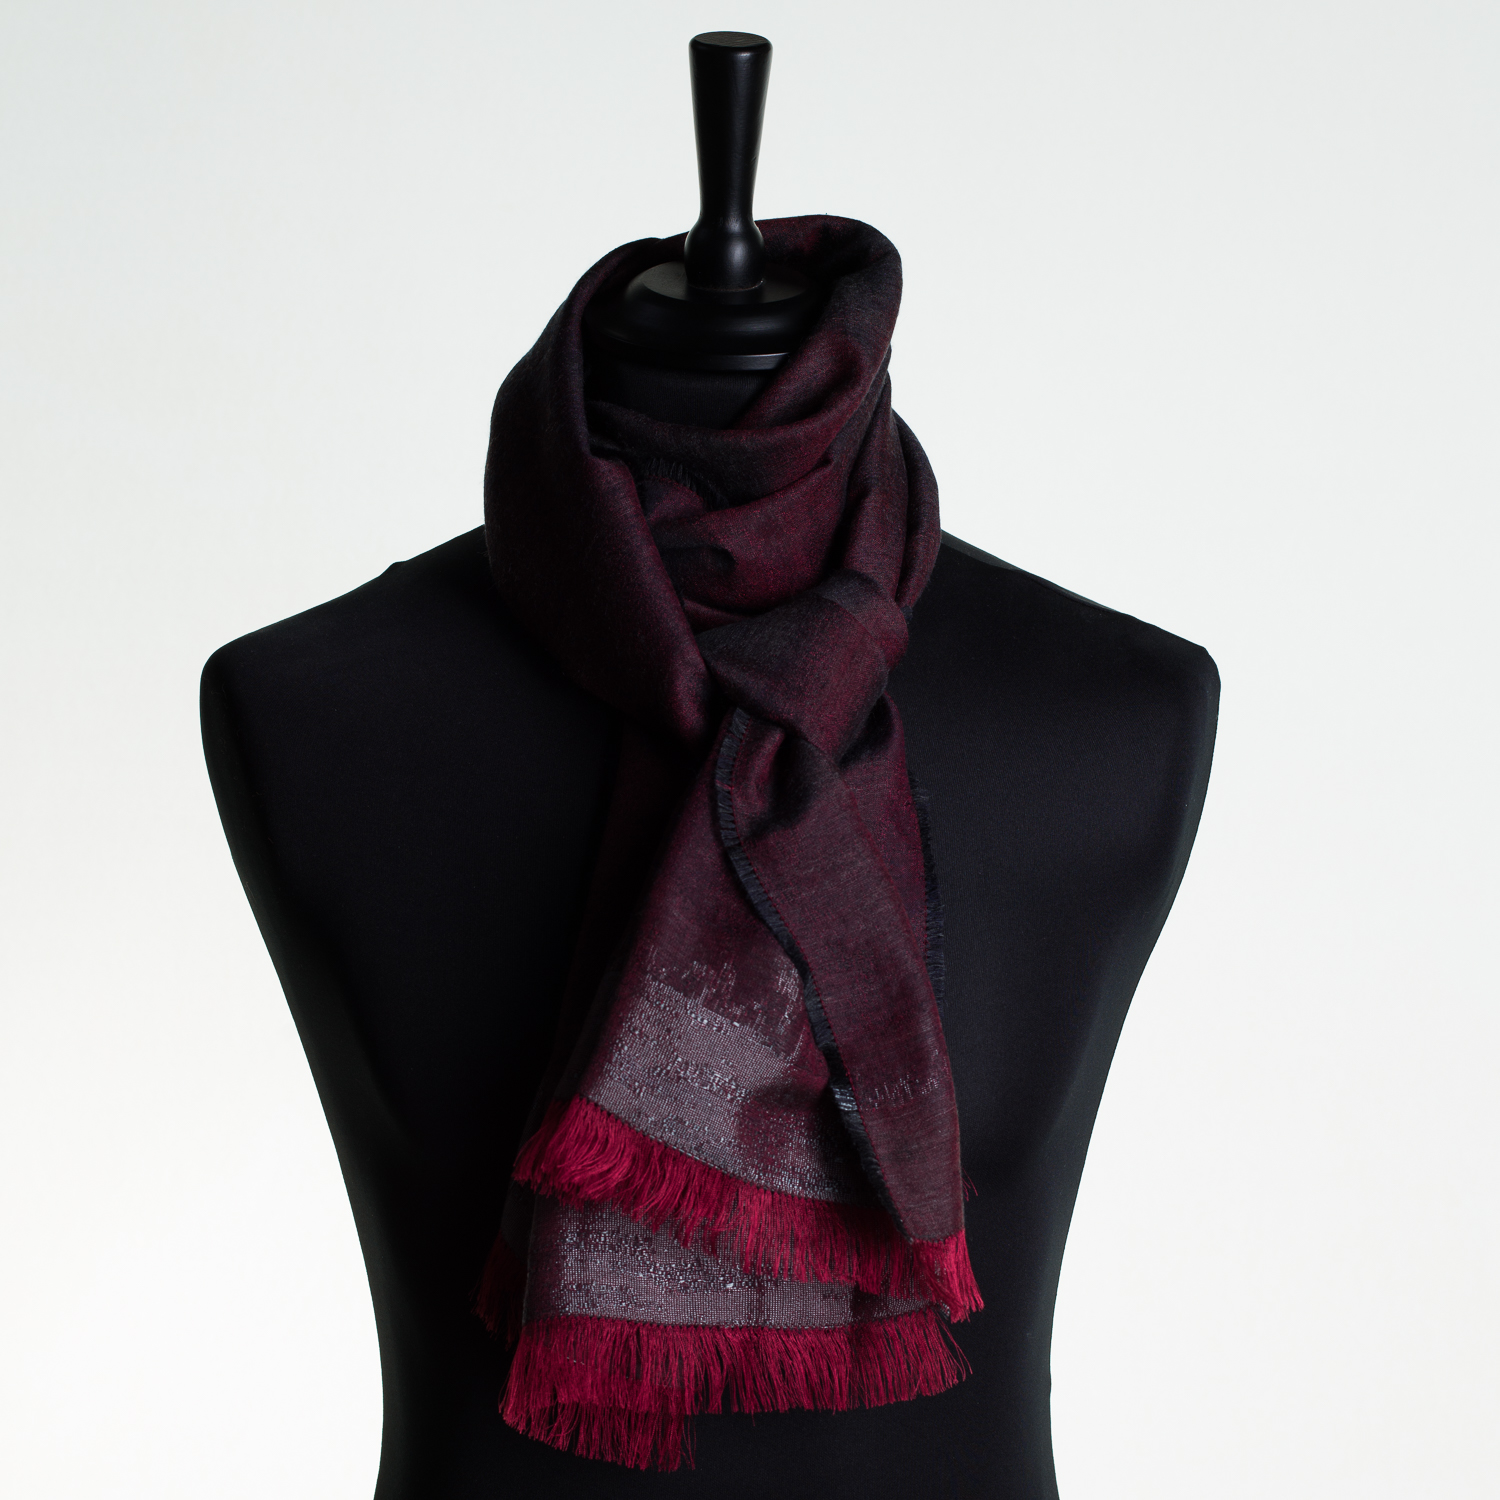 HOT CITY 'RED' LONG SILK AND CASHMERE SCARF